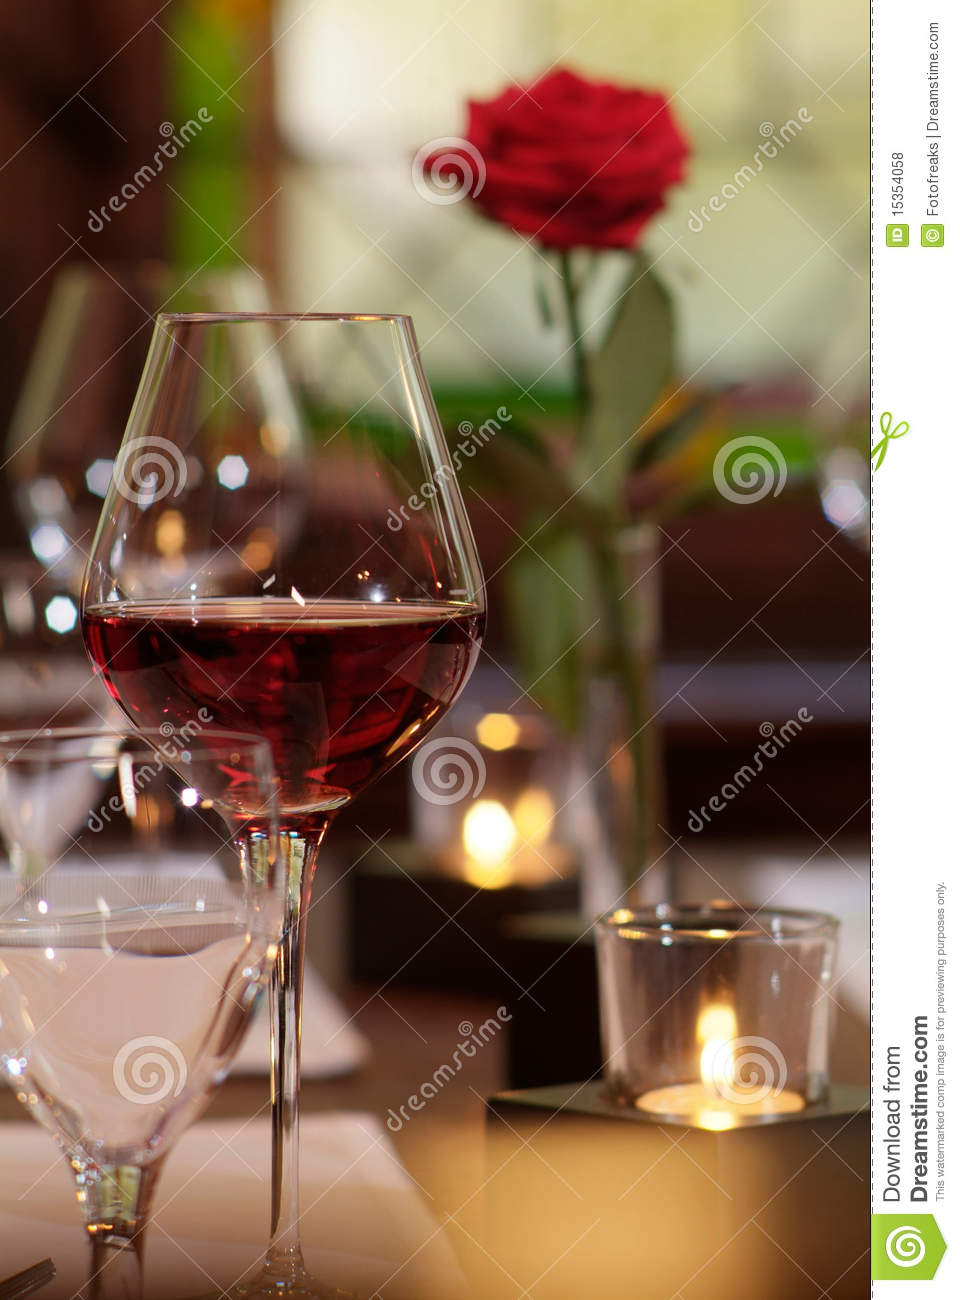 Red wine glass with candle and rose